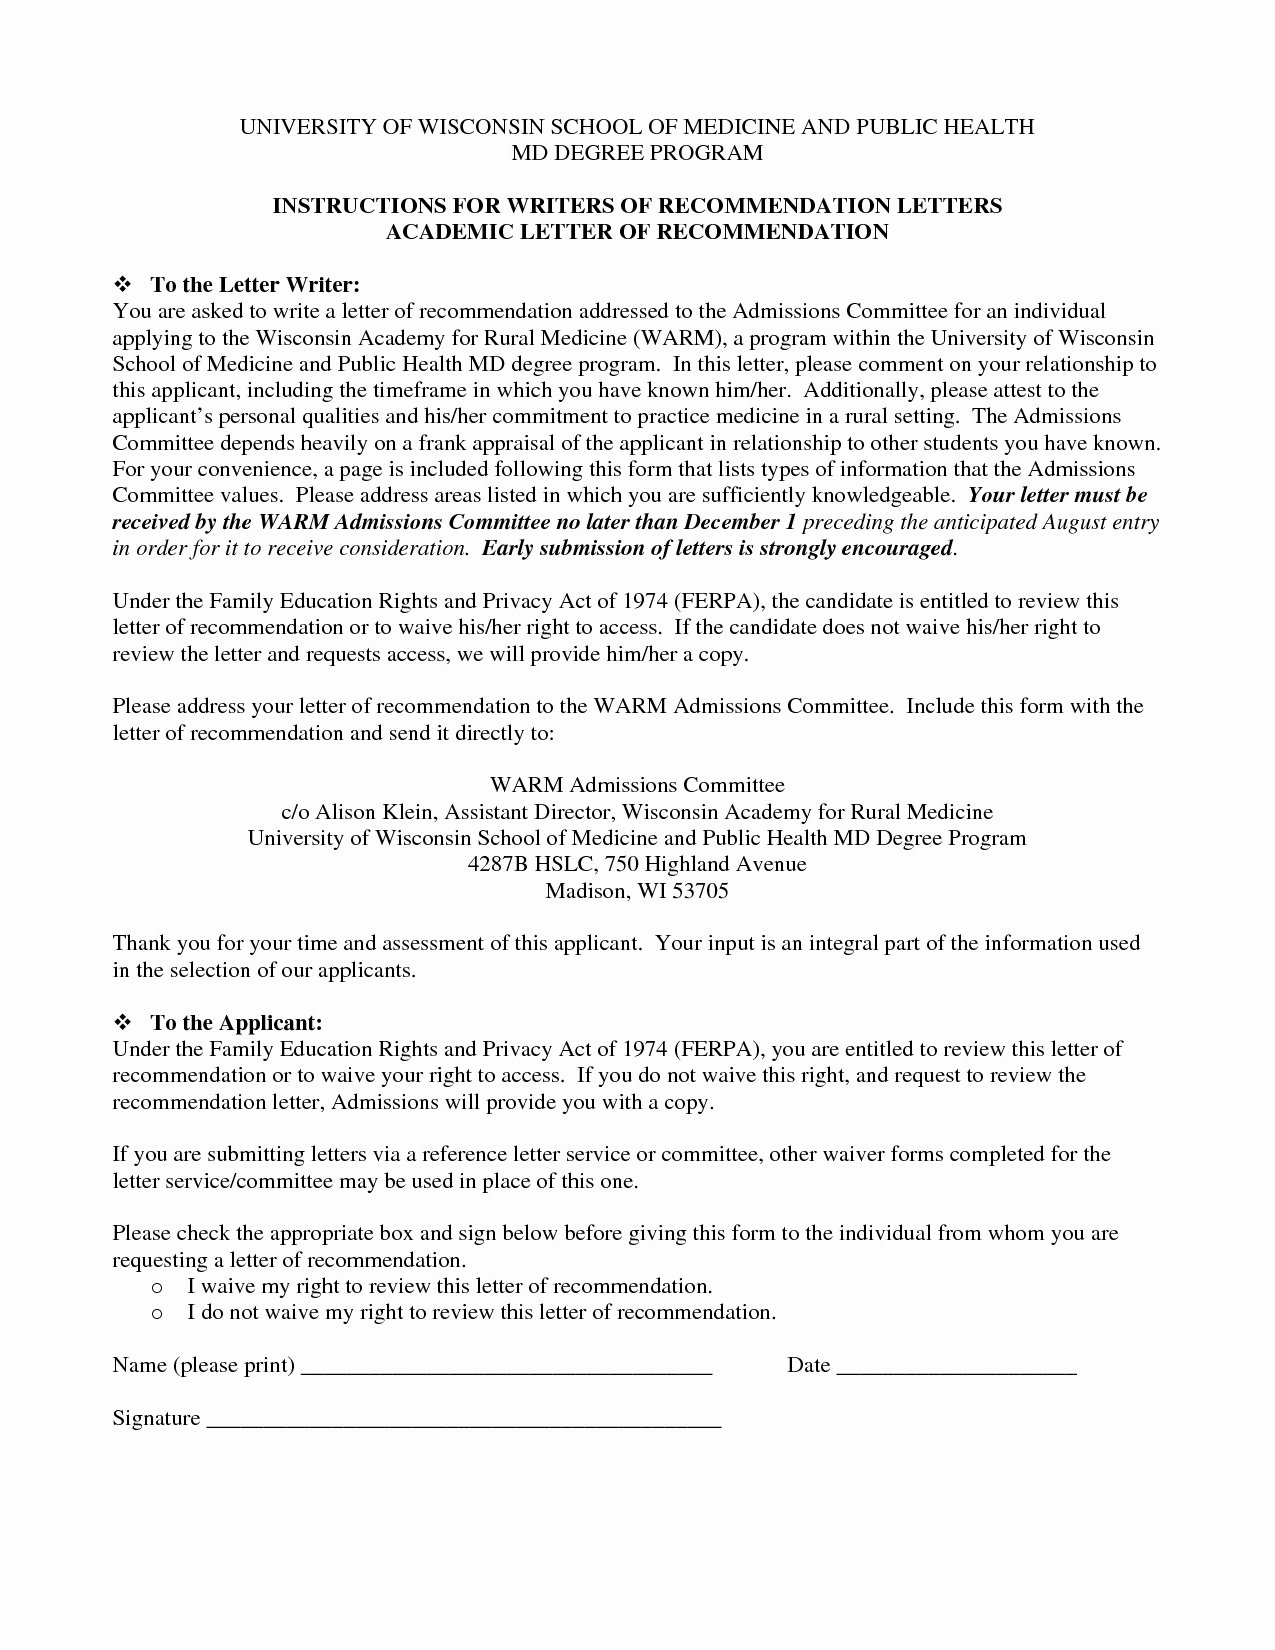 Medical School Letter Of Recommendation Awesome Template for Letter Re Mendation for Medical School